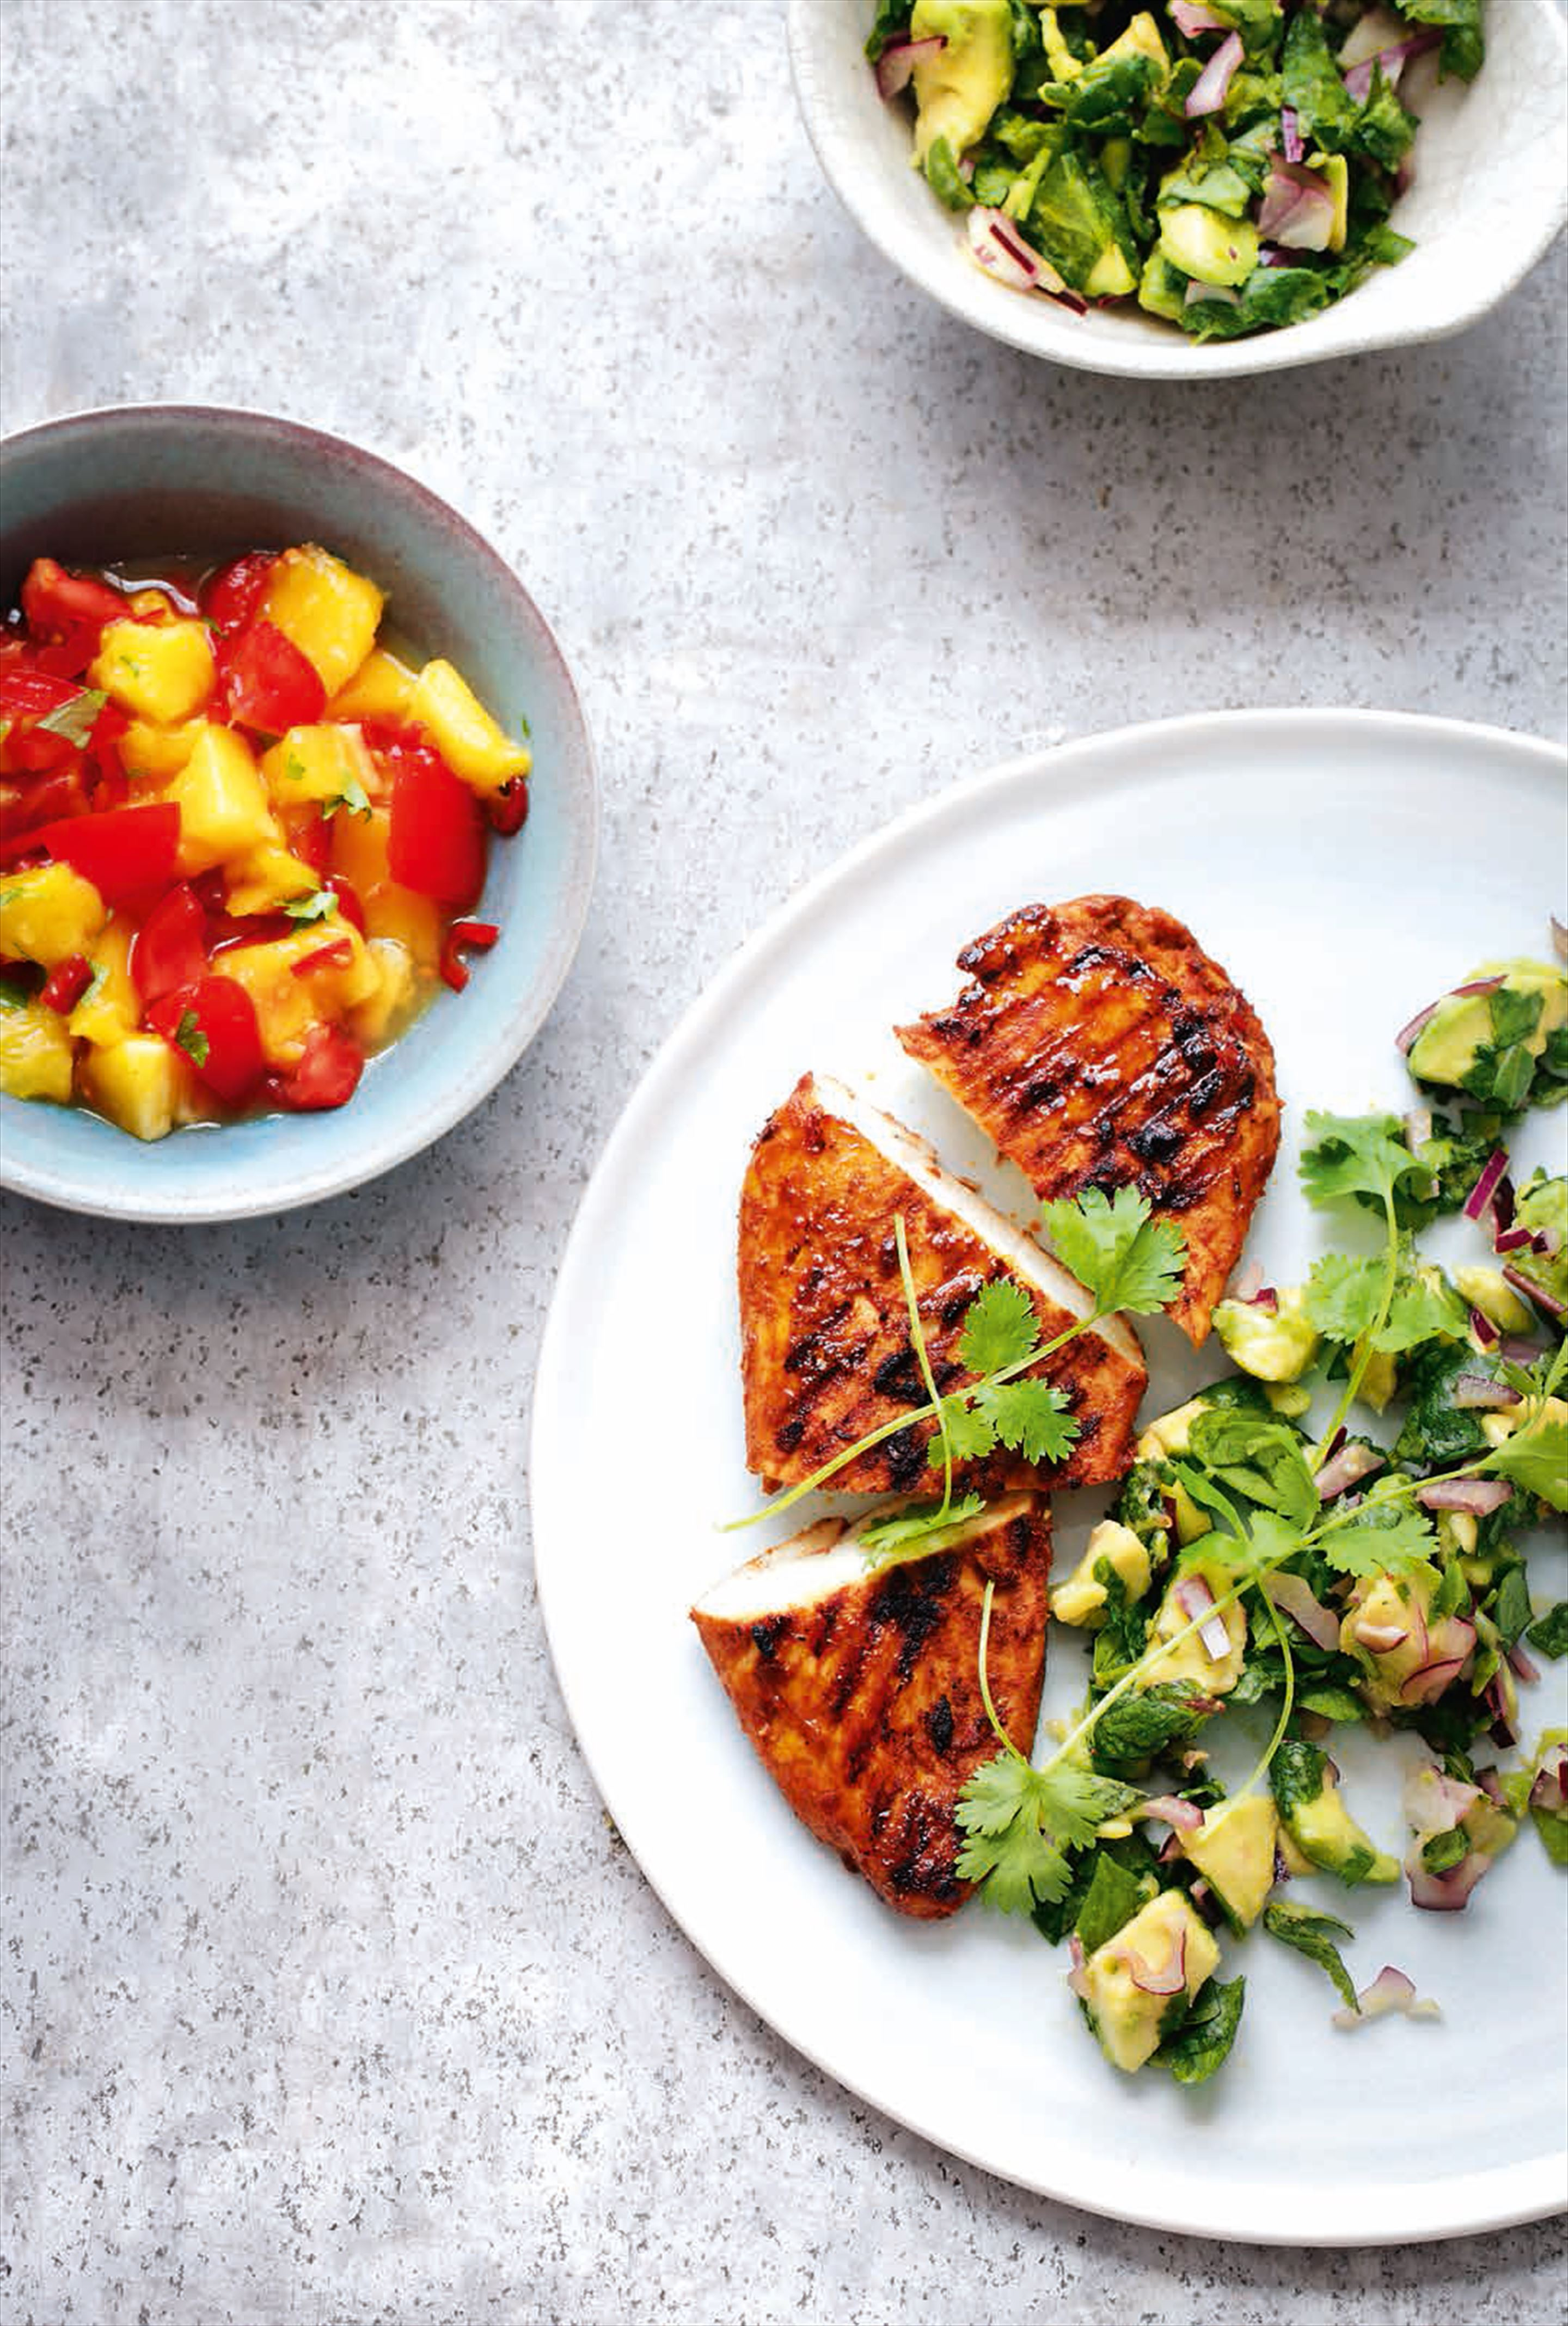 Cajun chicken with avocado salad & mango salsa